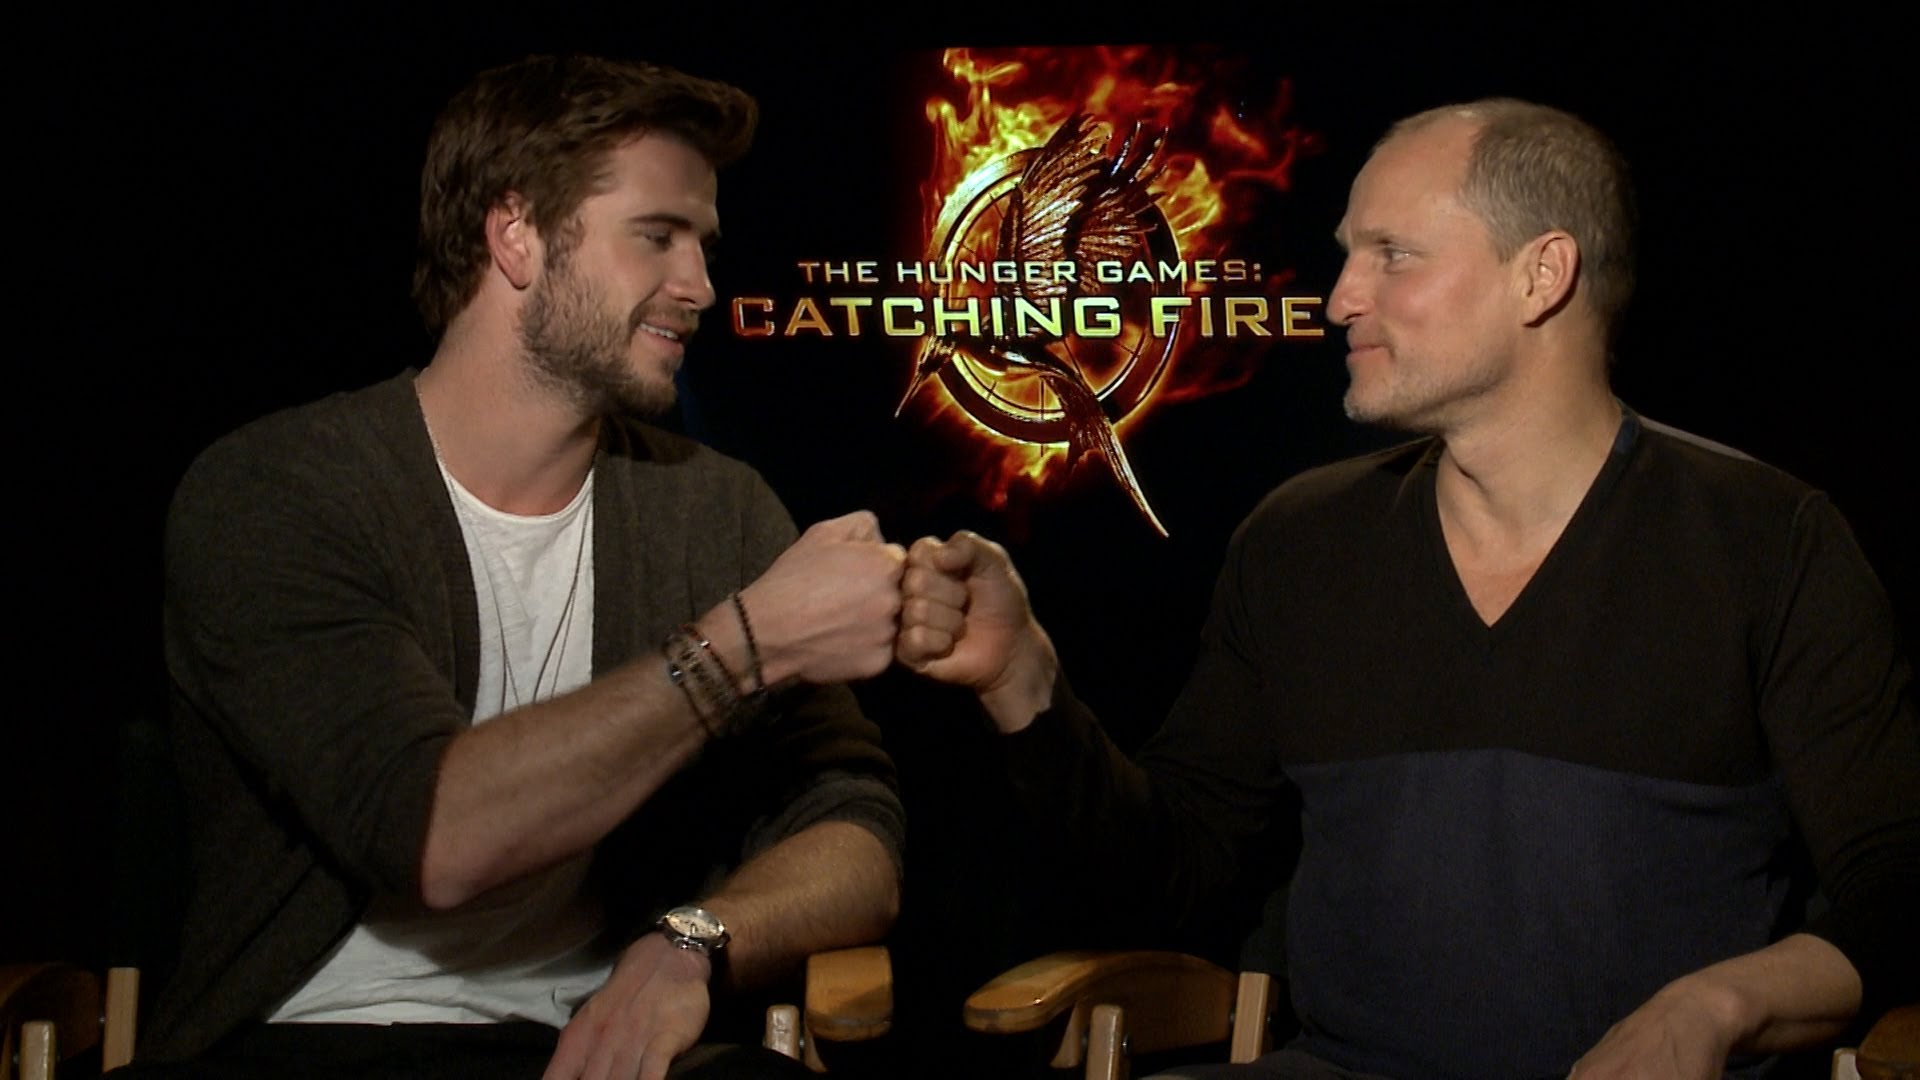 Liam Hemsworth and Woody Harrelson promoting The Hunger Games: Catching Fire . They also star together in  By Way of Helena , filmed in Greenwood, Mississippi. Image via  Google .